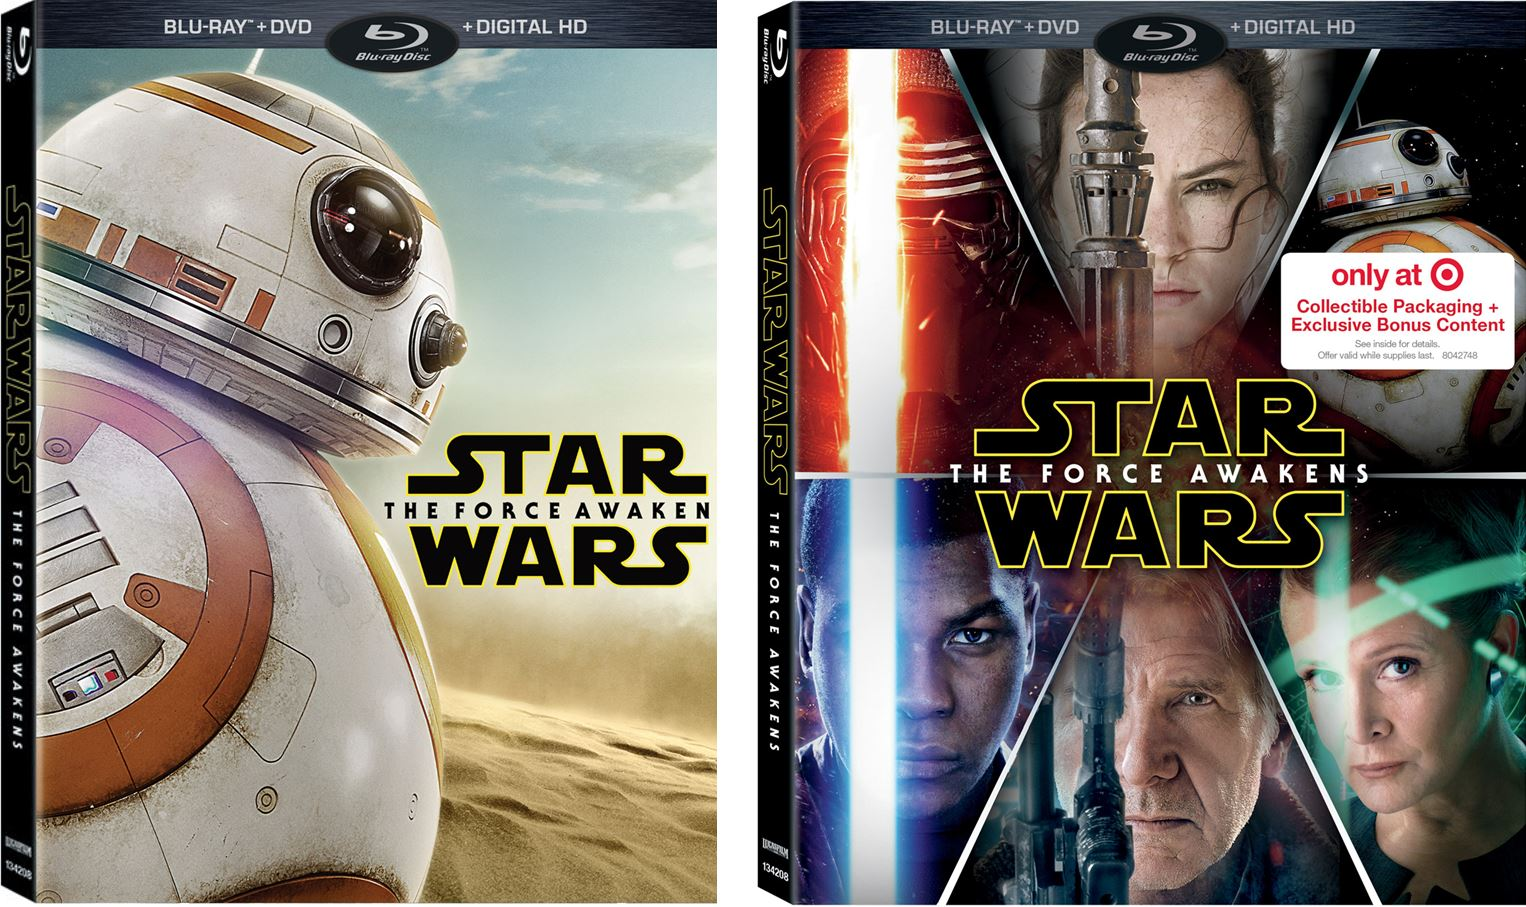 Force Awakens Blu-Ray release set for early April